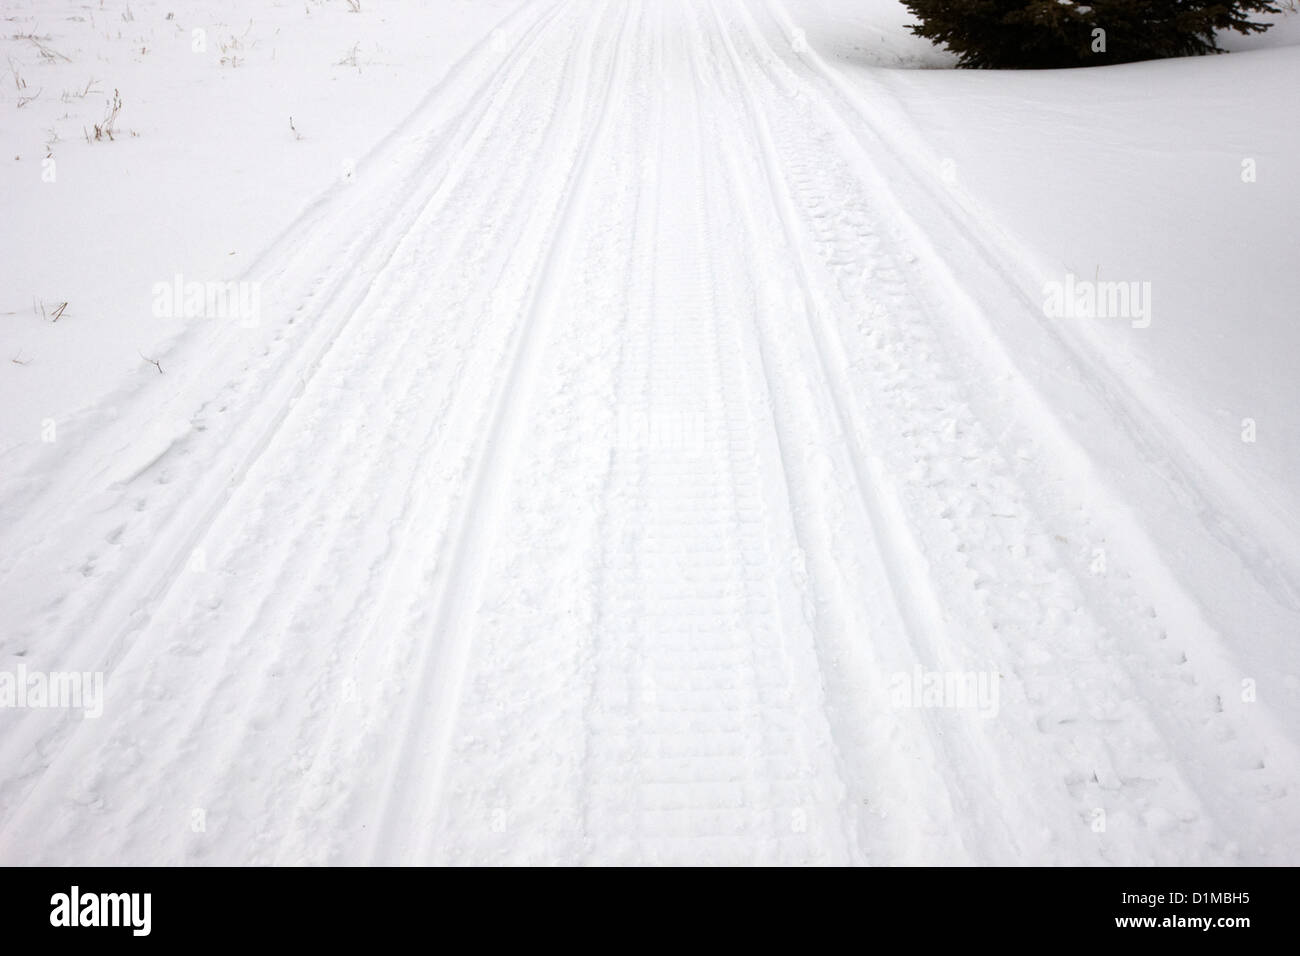 snowmobile tracks in the snow Kamsack Saskatchewan Canada - Stock Image